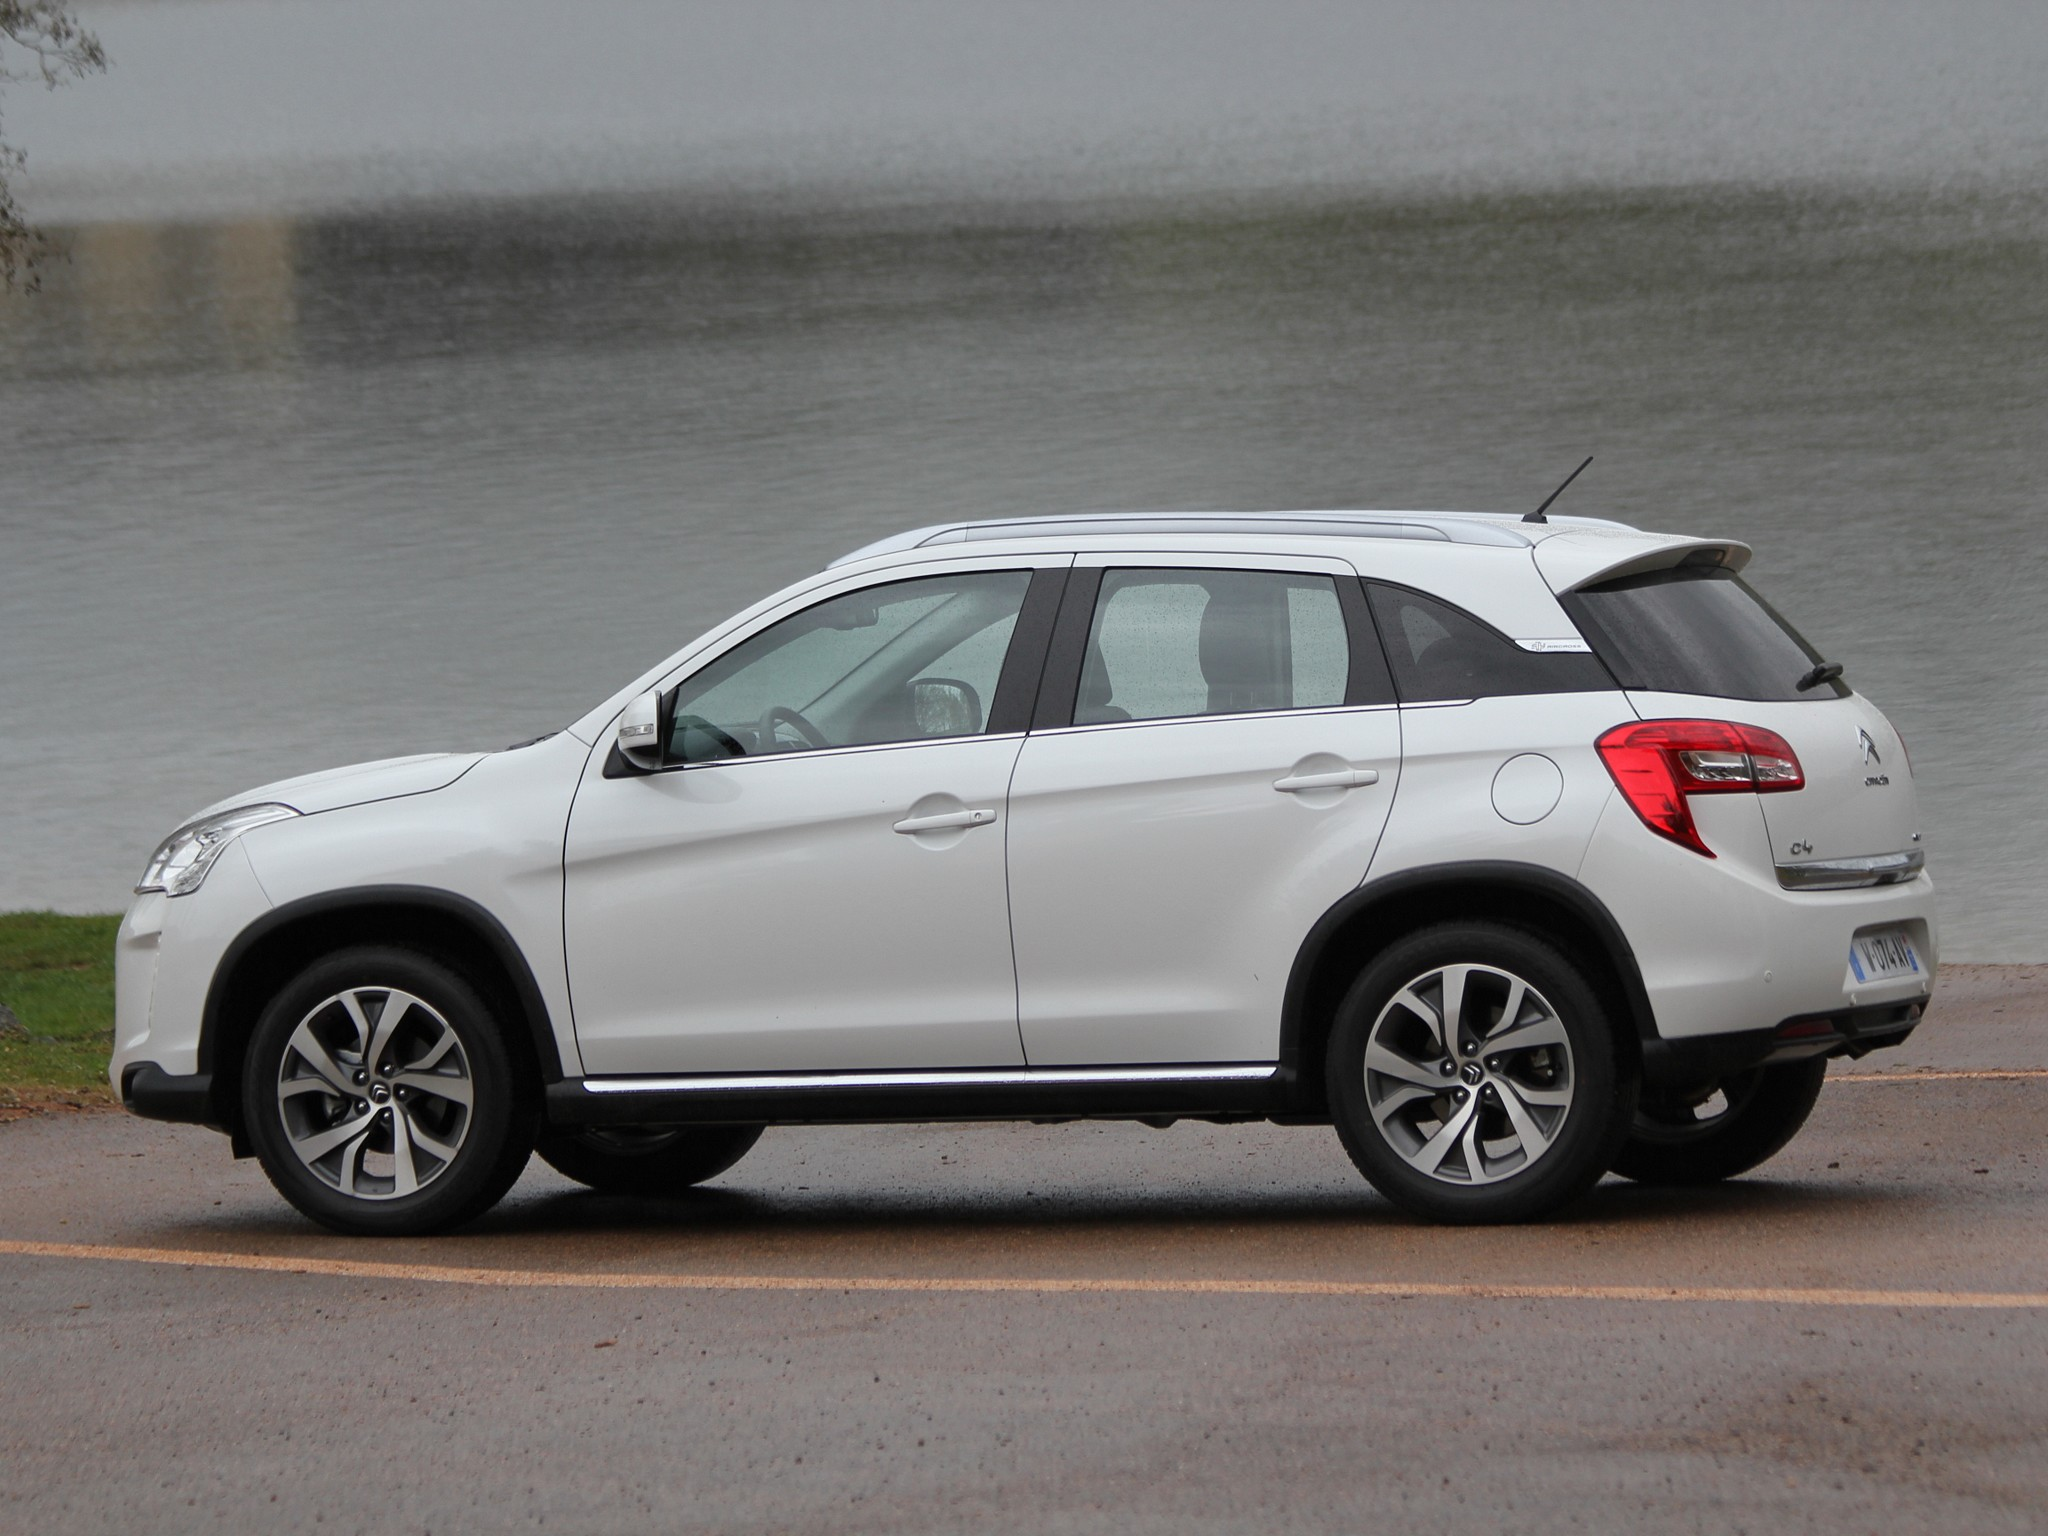 Citroen C4 Aircross Photos - Image 8